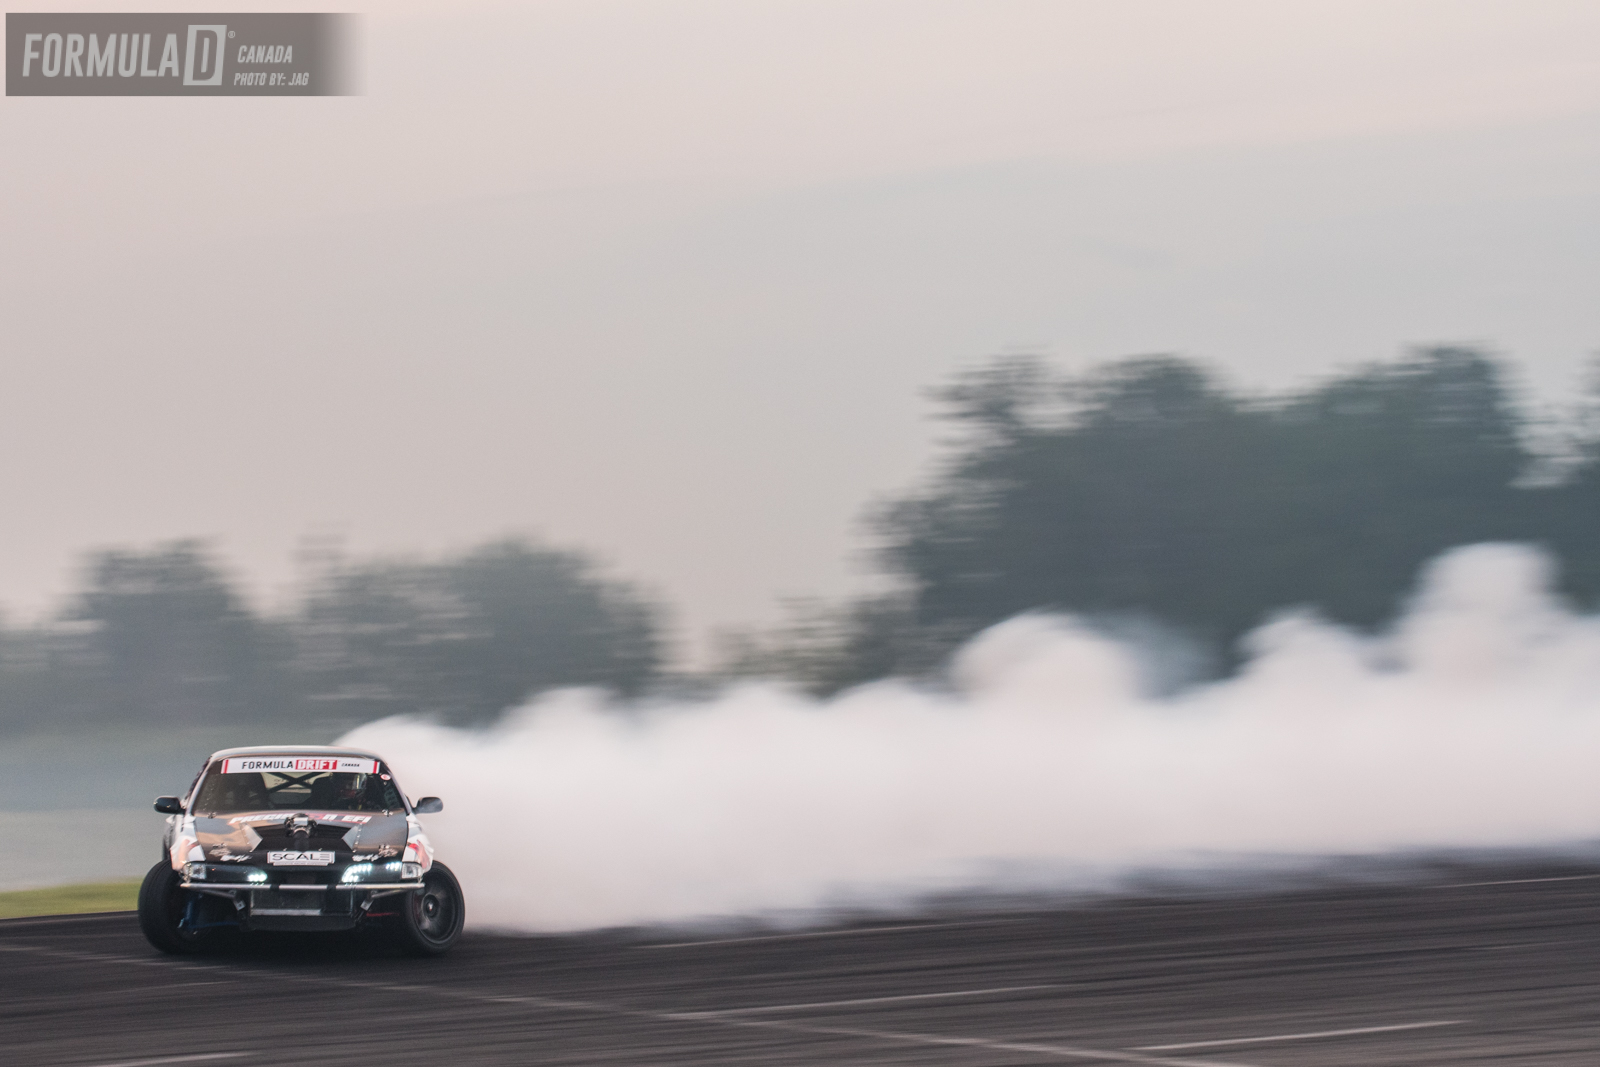 Top 8 Marc faced Jonathan Nerren in his bad ass v8 Supercharged S14. Contact was made on initiation causing Jonathan to pretty much loose drift but Marc was able too hold it down and finish his run. Marc takes the win.